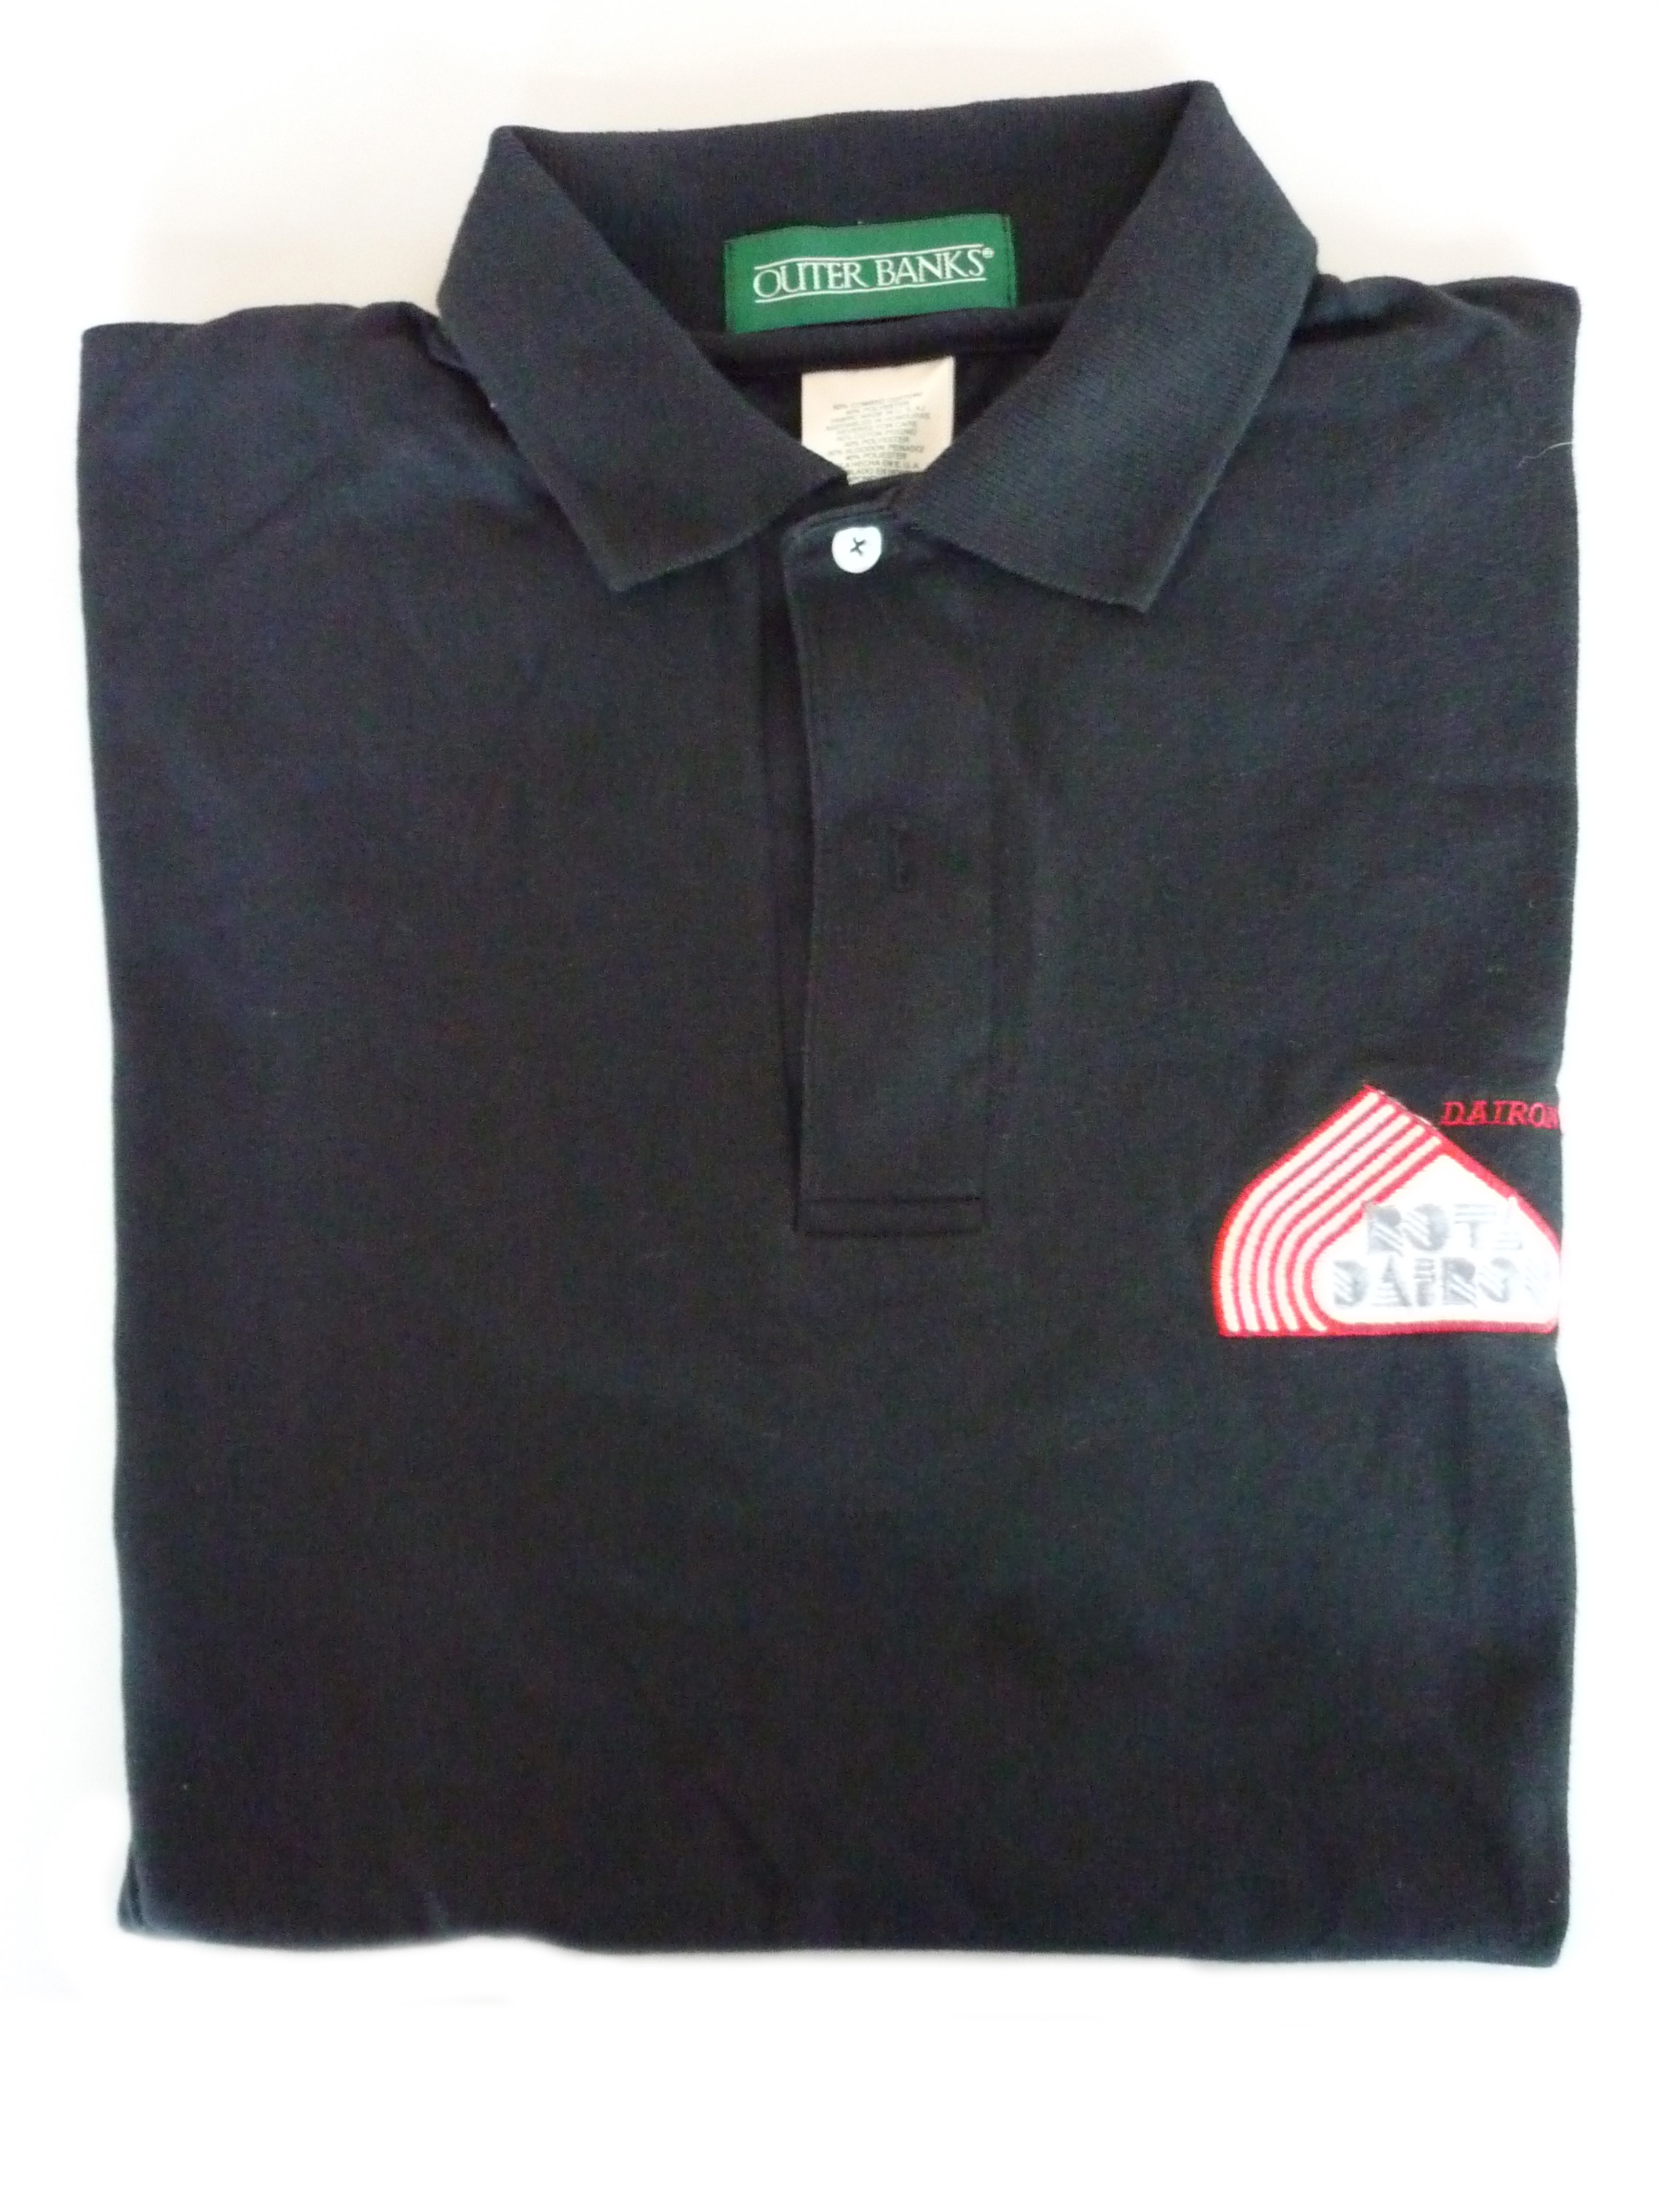 Black RotaDairon polo shirt - folded